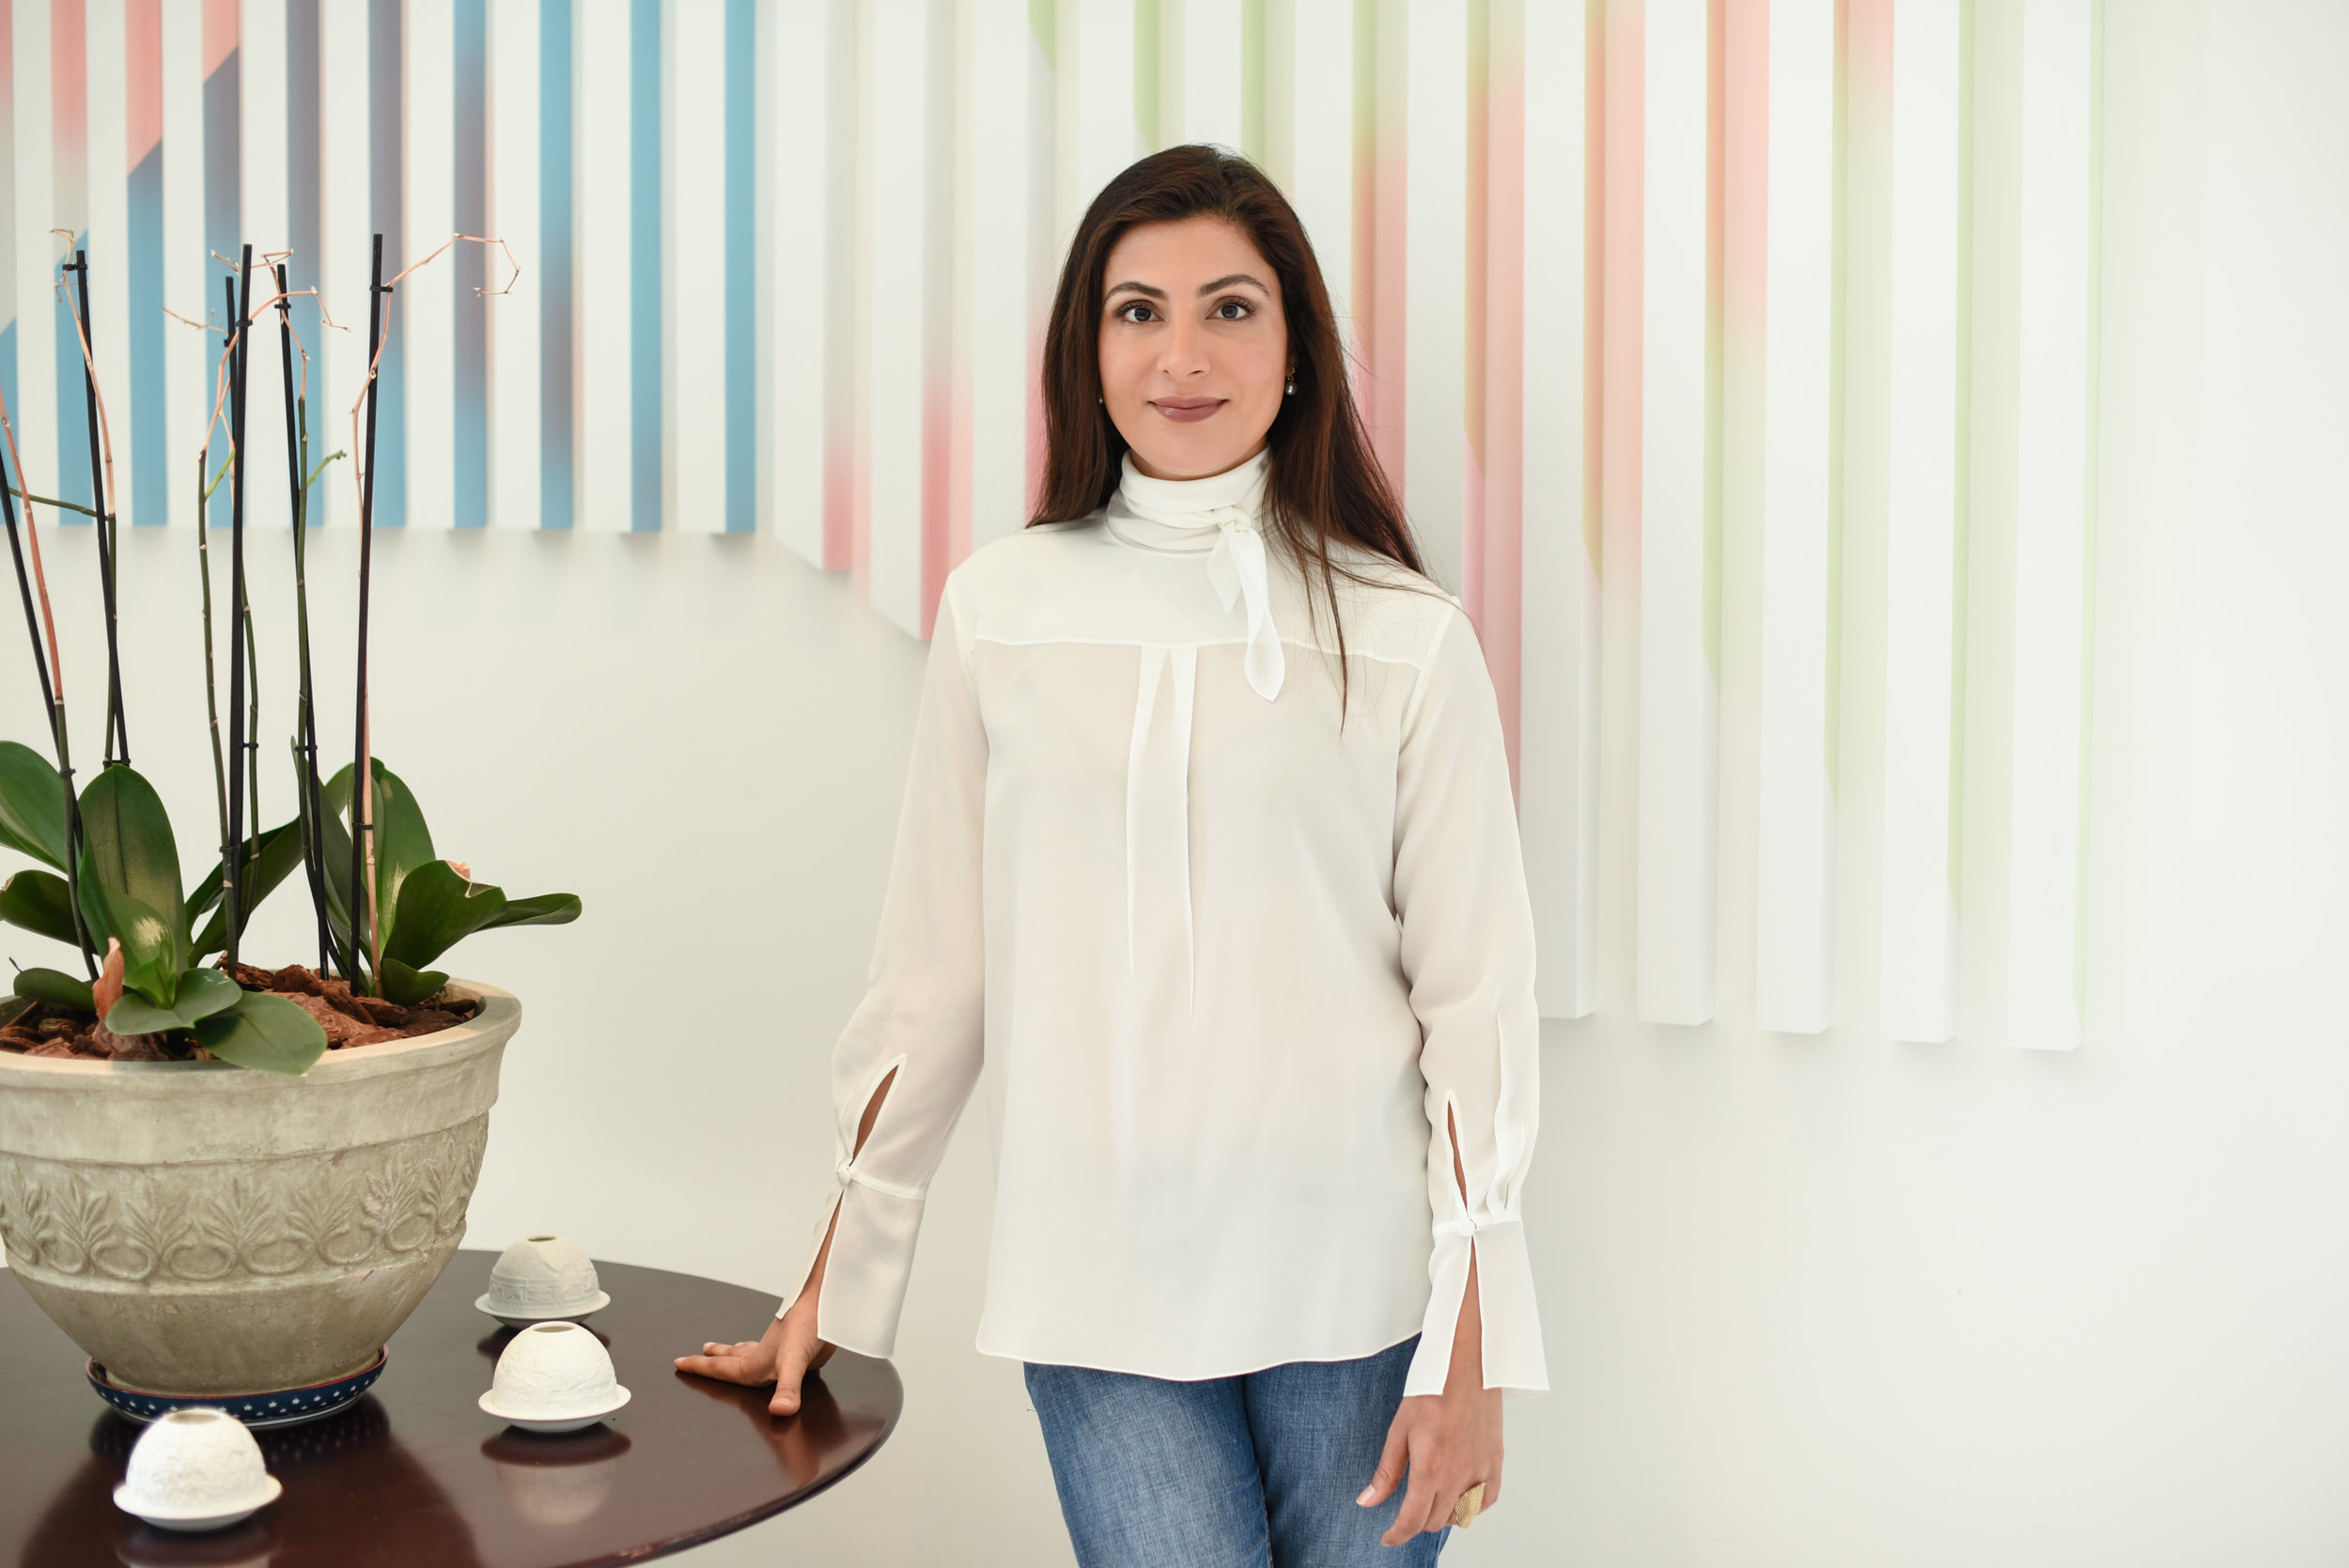 Dr. Lamees Hamdan - CEO and Founder, Shiffa